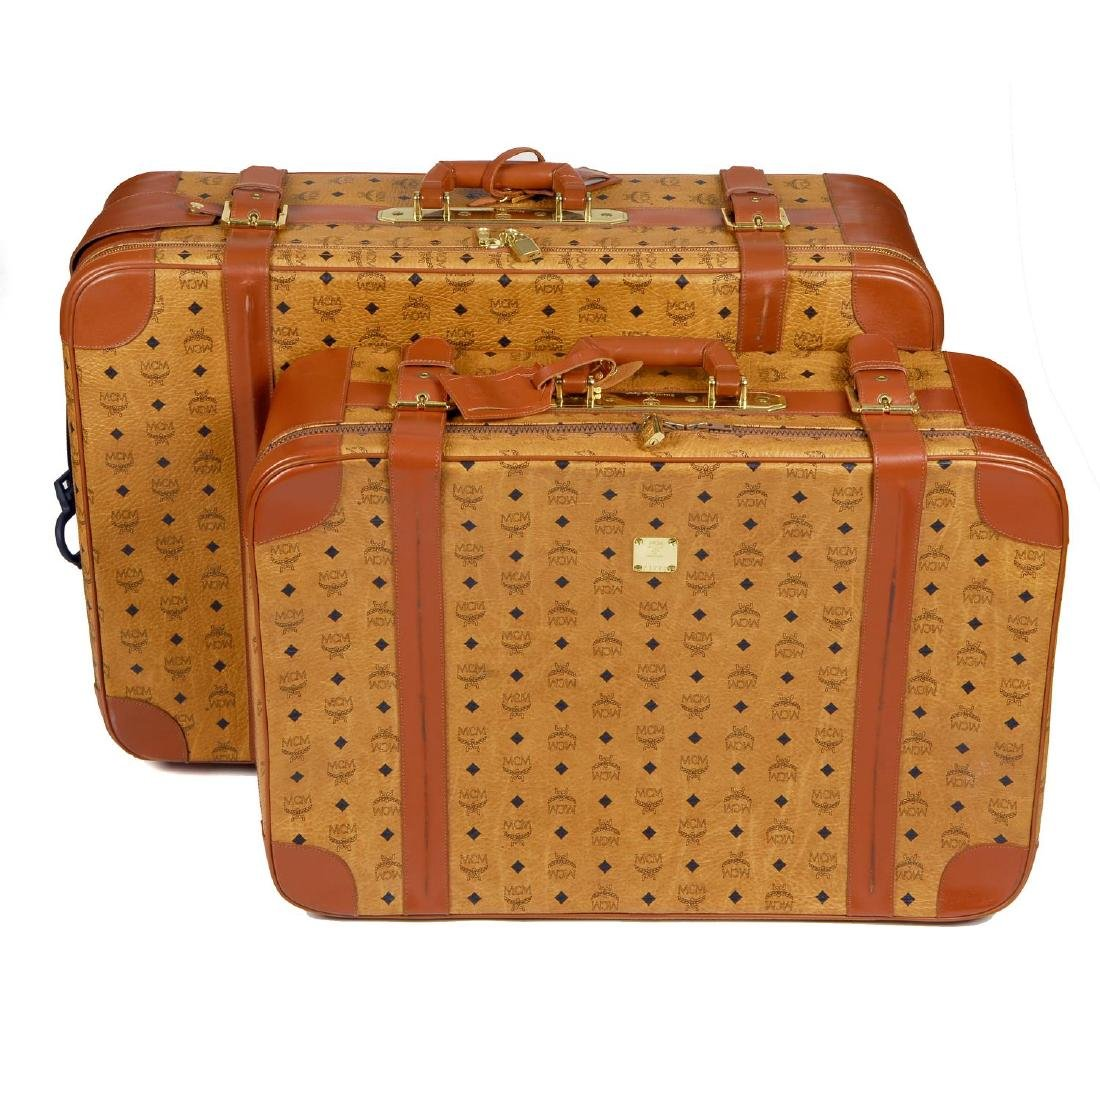 MCM - two vintage travel suitcases. To include a larger